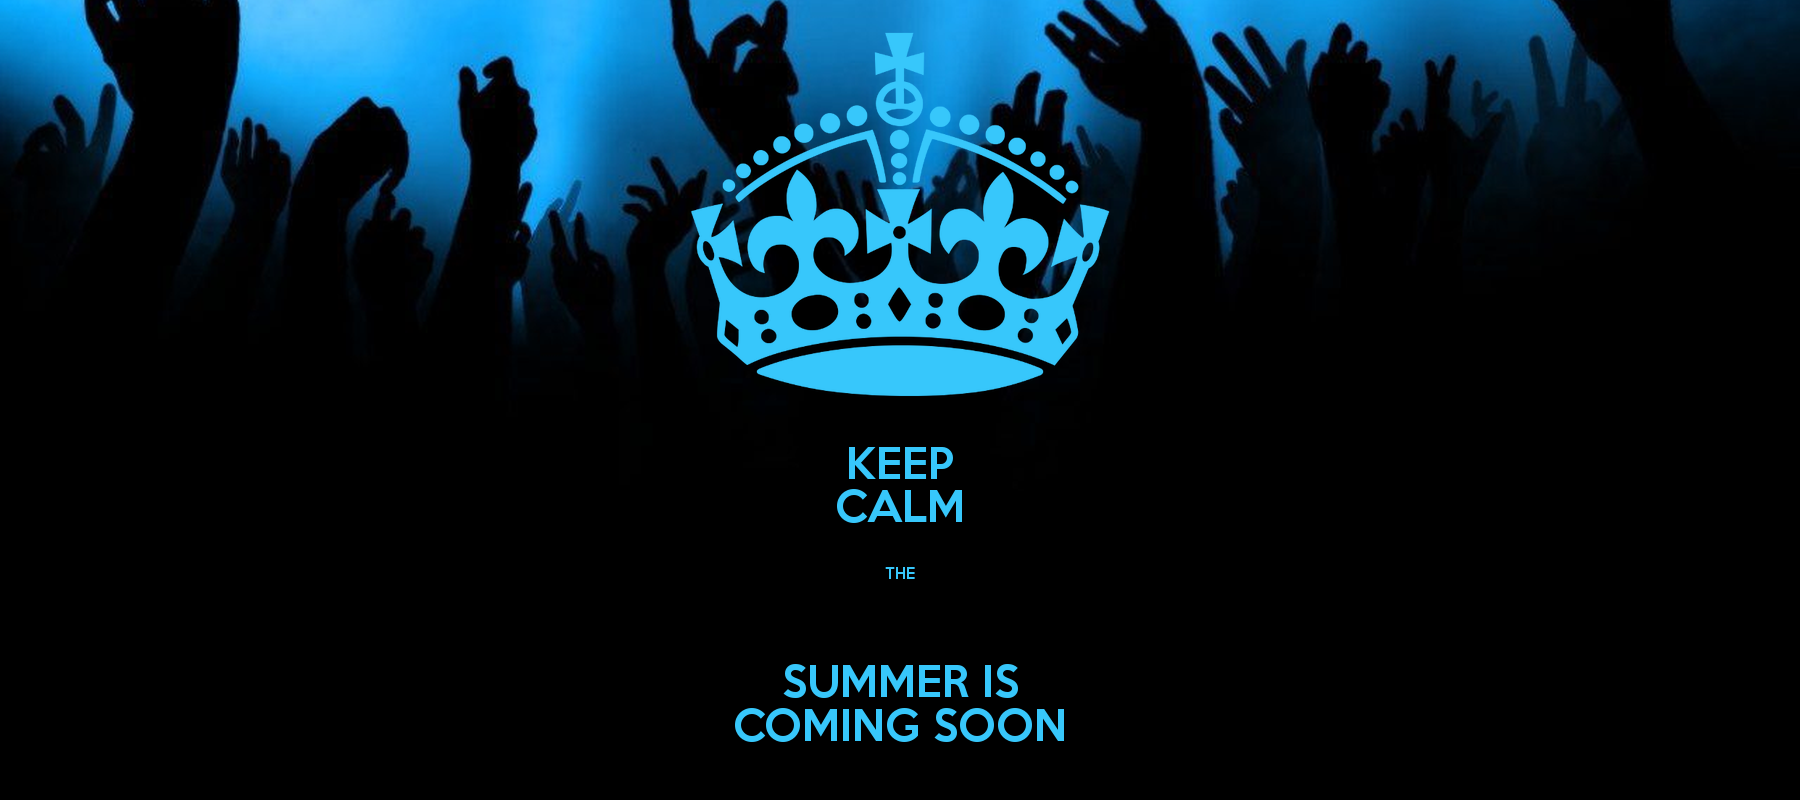 Baby Coming Soon Quotes Quotesgram: Quotes About Summer Coming. QuotesGram